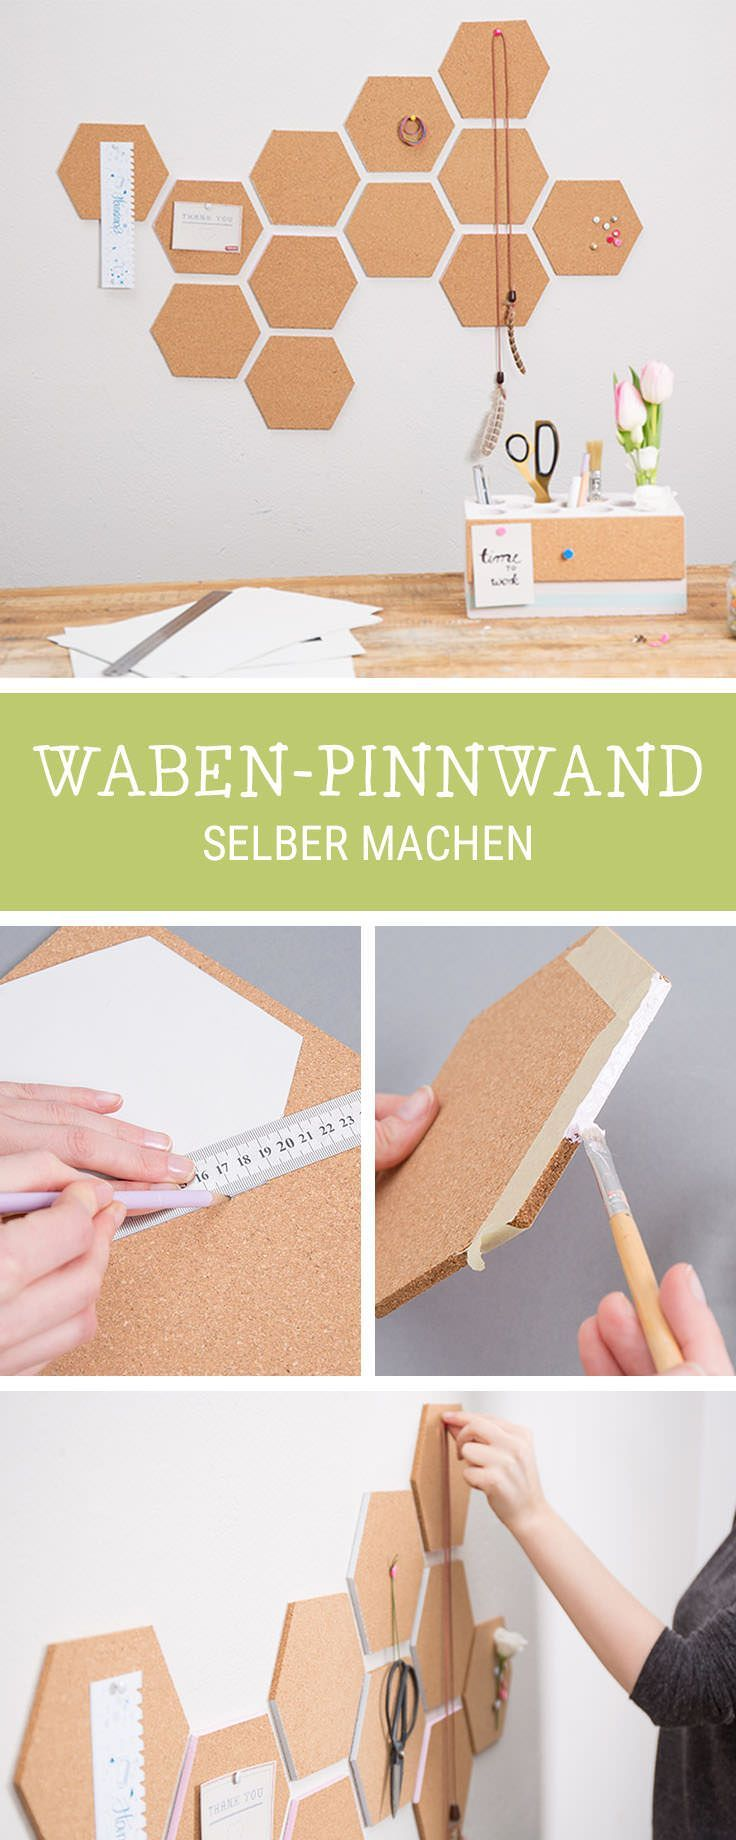 diy anleitung waben pinnwand aus kork selber machen via organizations craft and diys. Black Bedroom Furniture Sets. Home Design Ideas